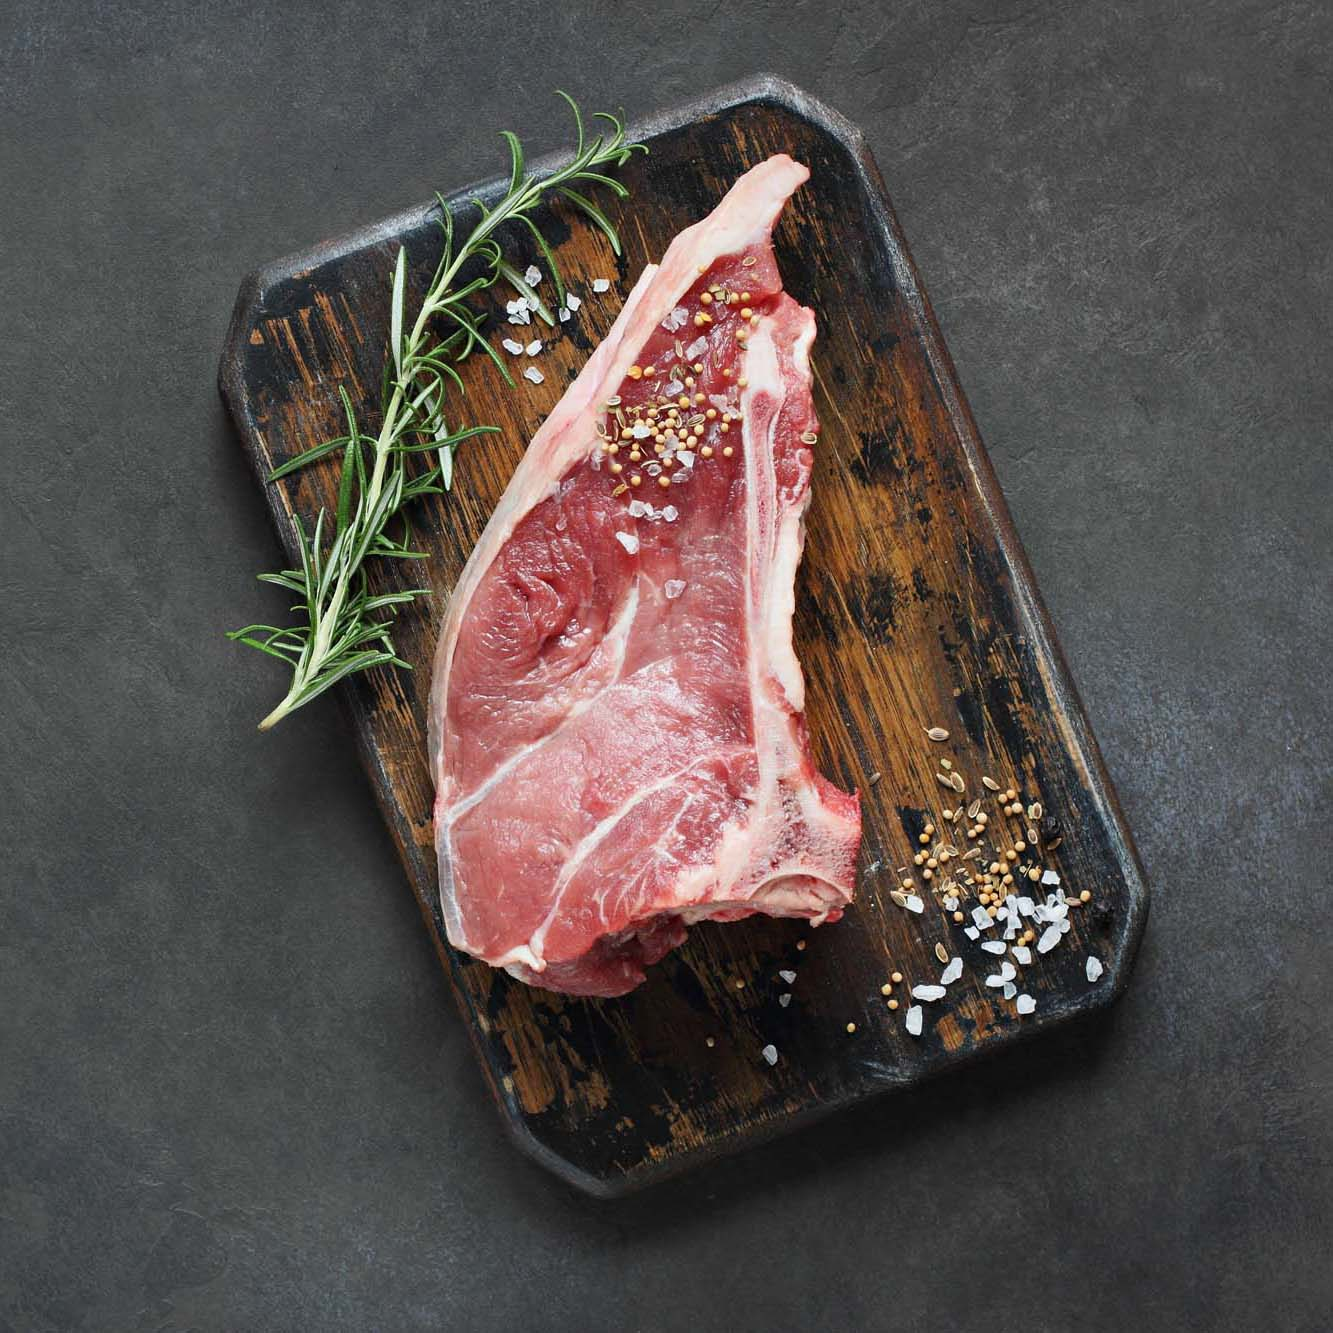 Meat.raw,Veal,Chops,With,Rosemary,Ready,To,Cook,On,Rustic